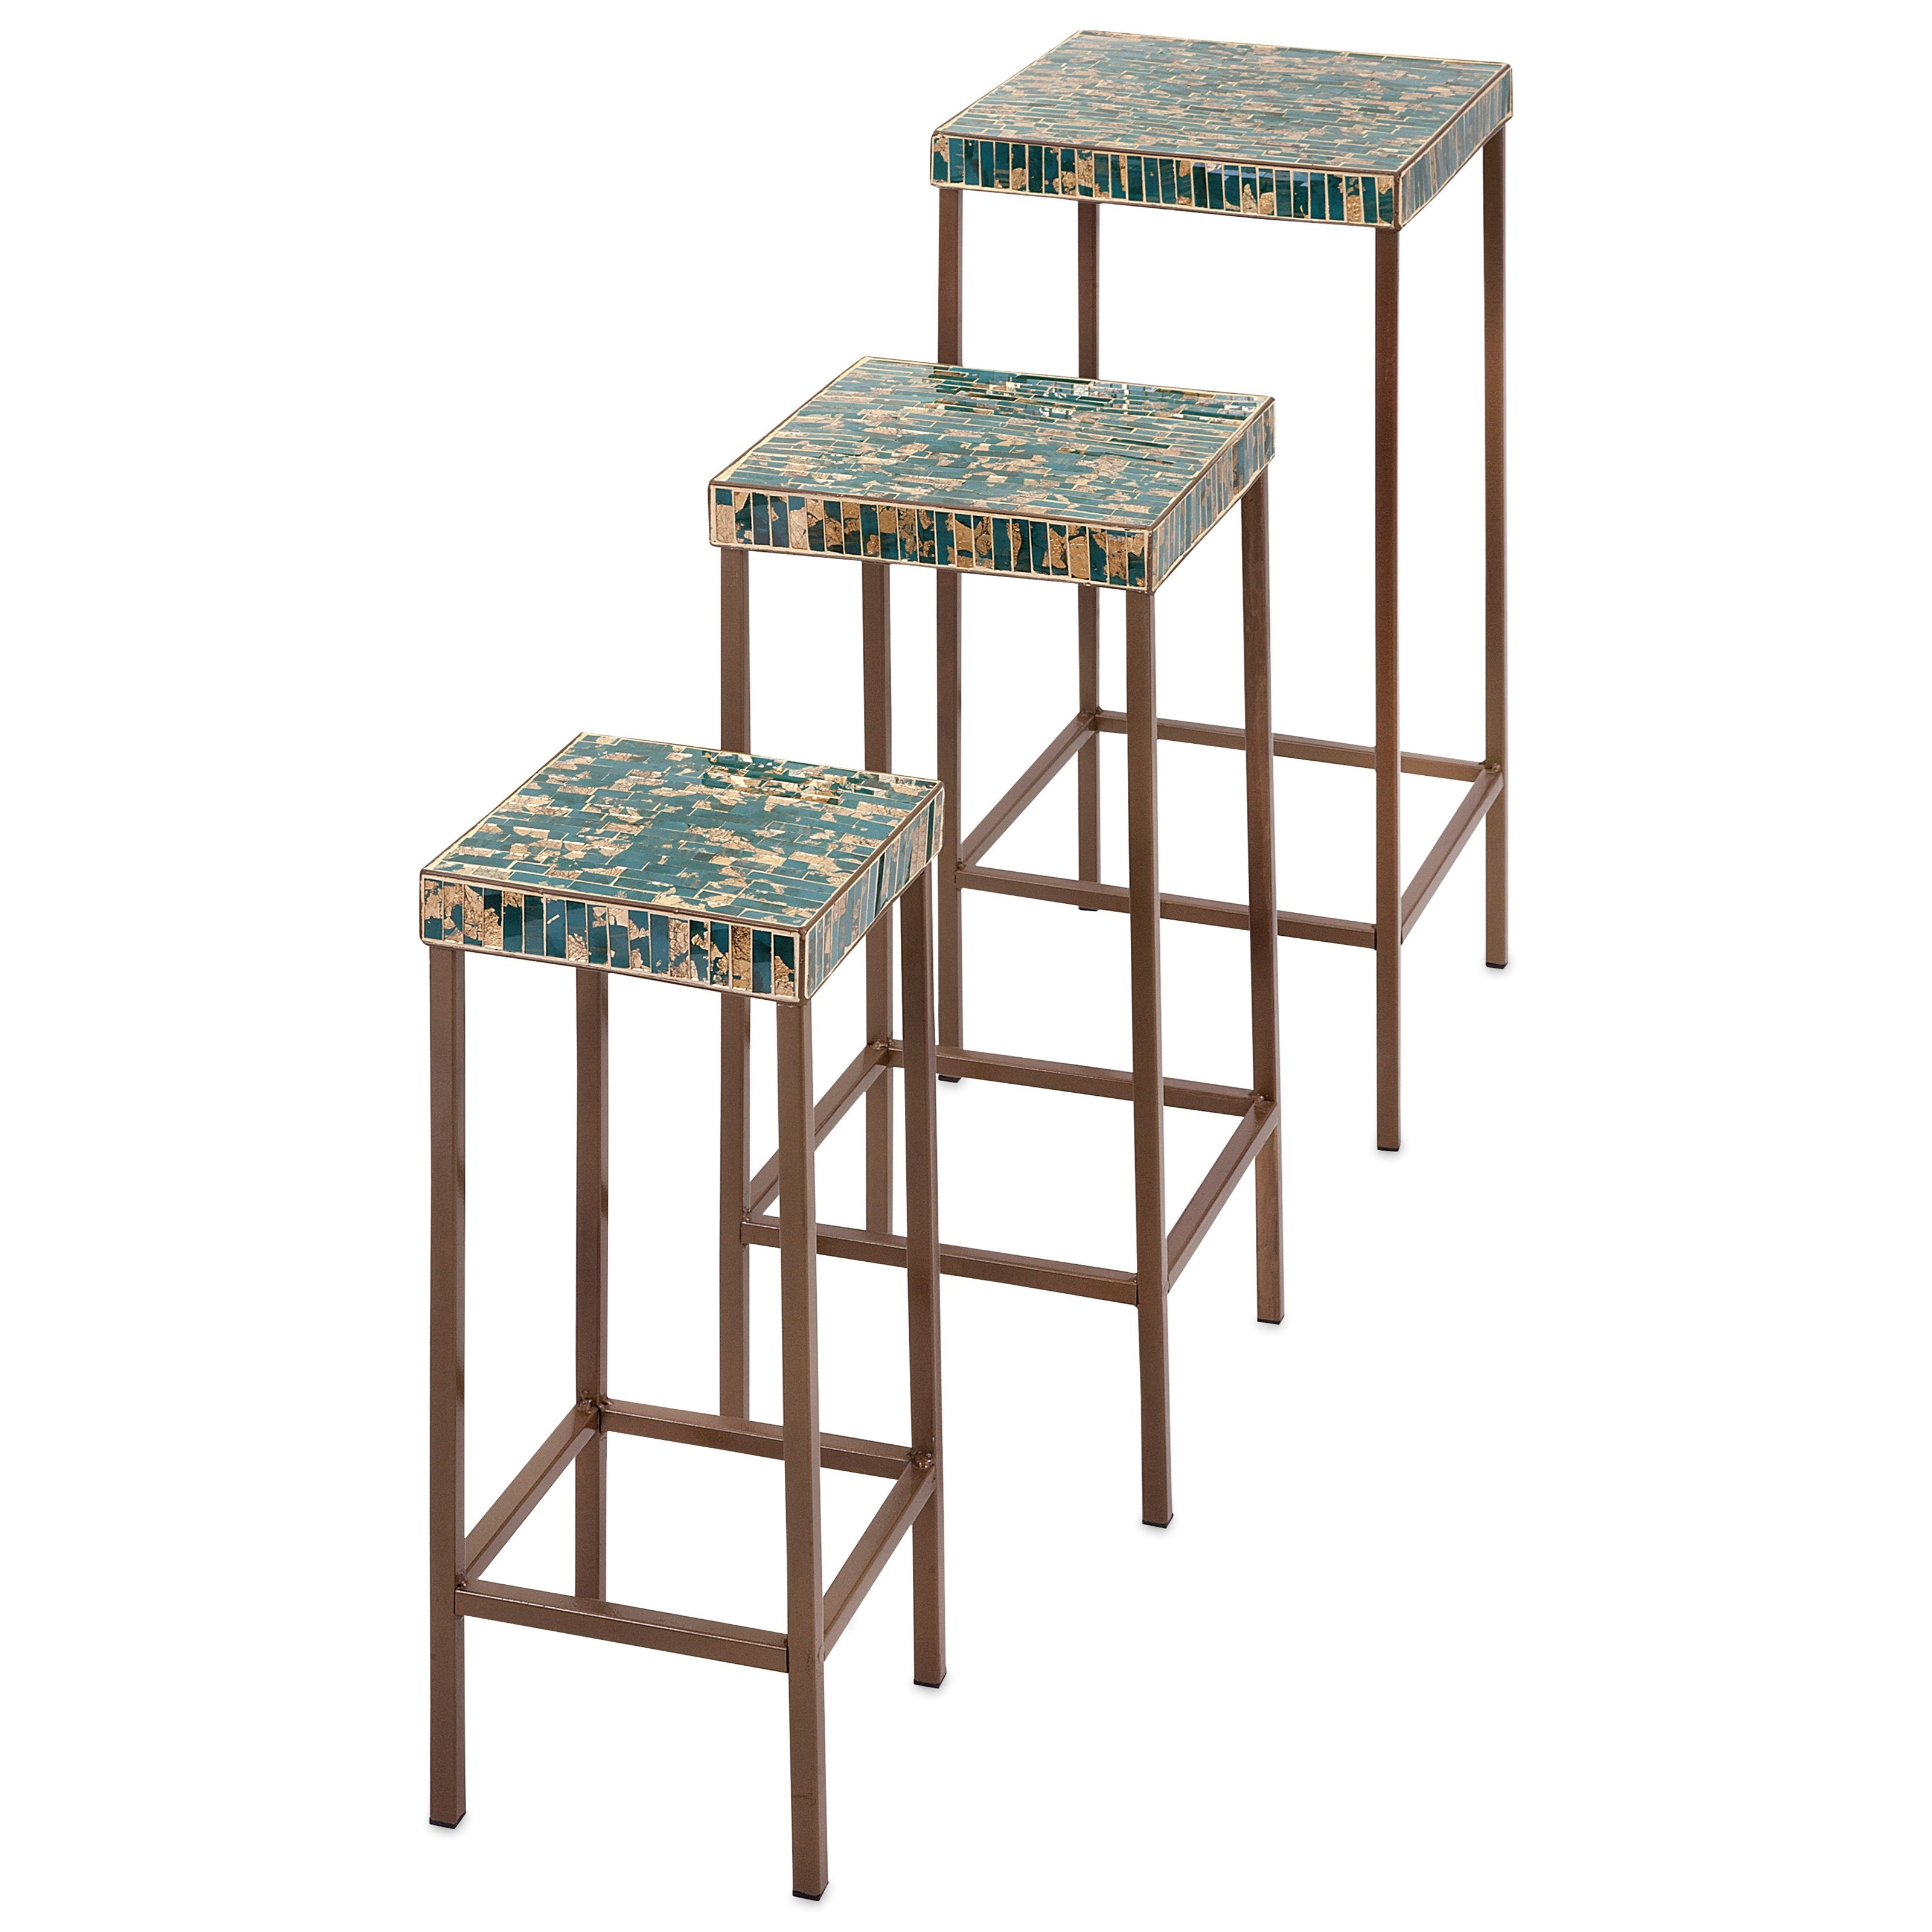 Accent Tables and Cabinets Glacier Mosaic Tables - Set of 3 by IMAX Worldwide Home at Alison Craig Home Furnishings